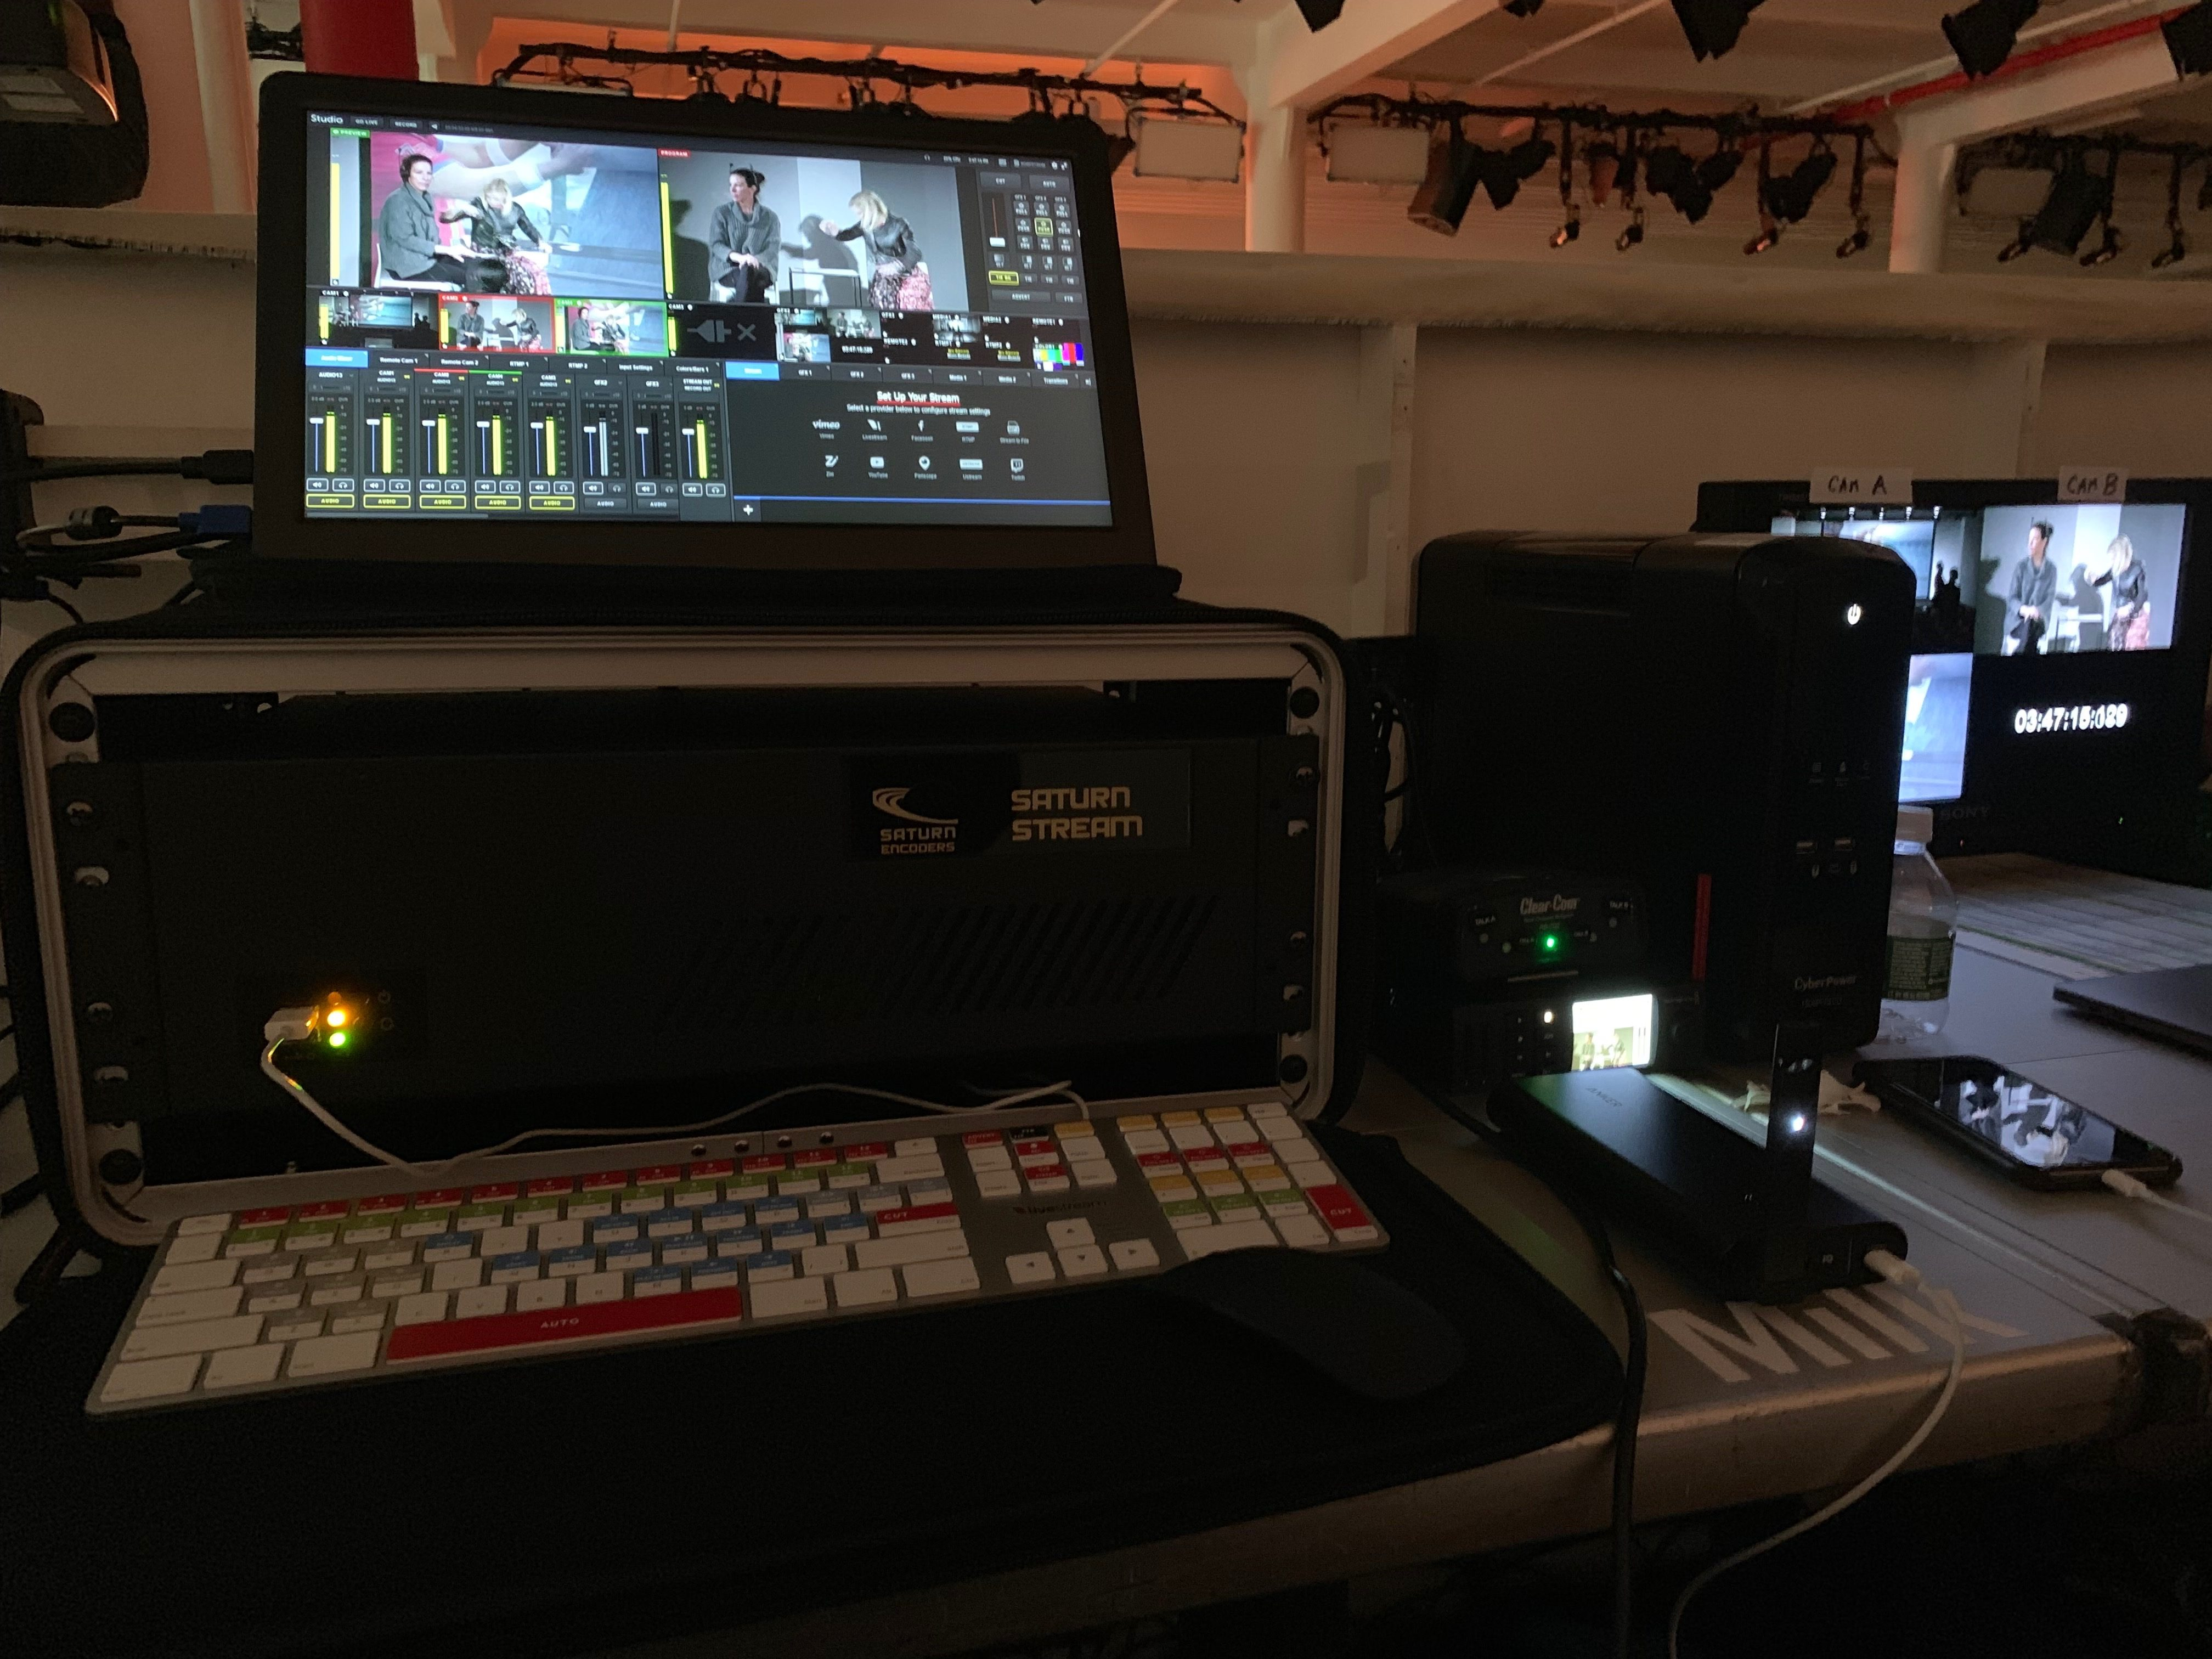 AMC's WebCasting wizard, Zack Breheney, set up for their live shows